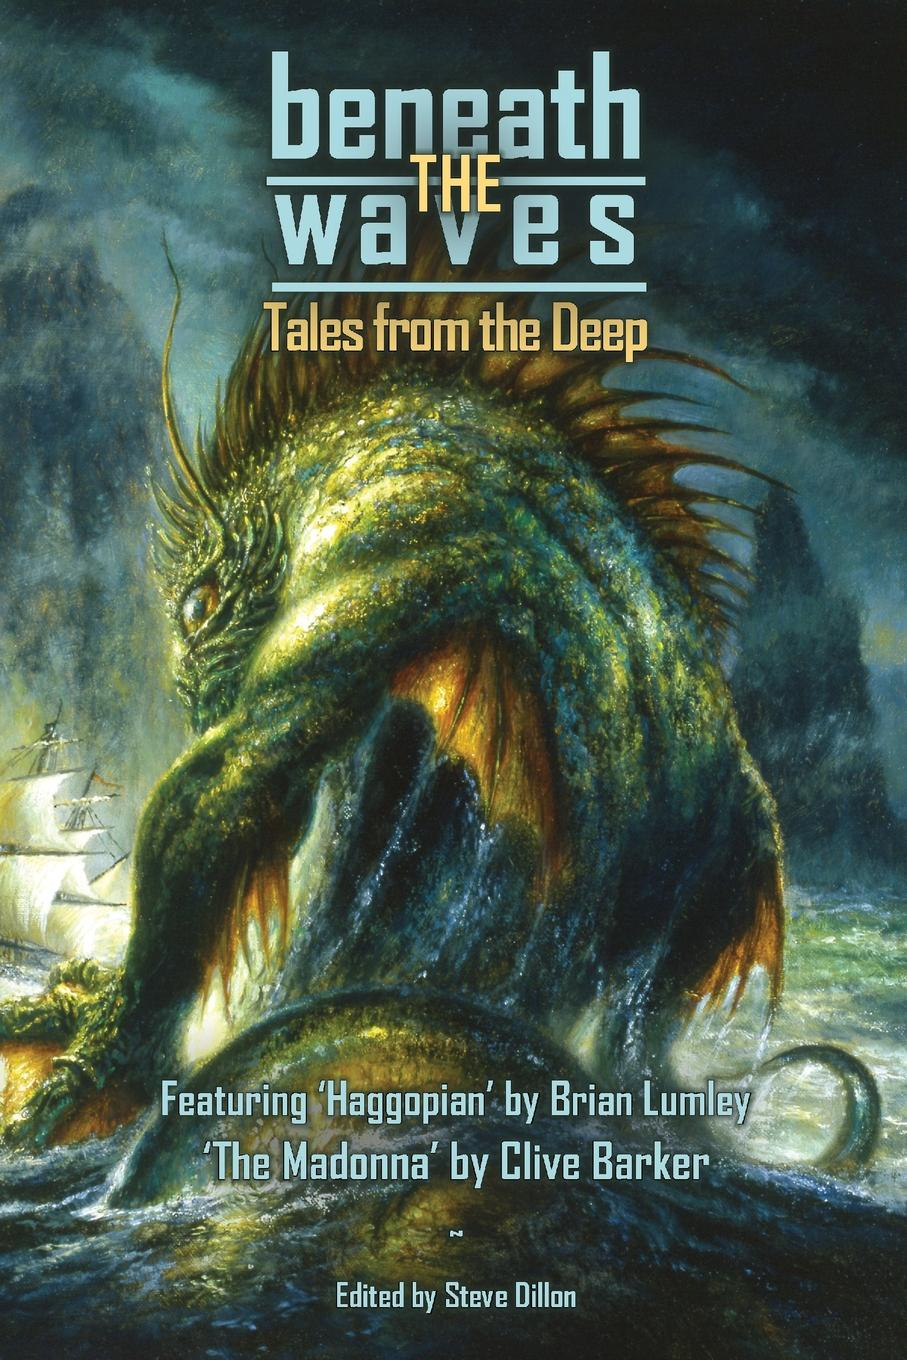 Clive Barker, Brian Lumley, Howard Phillip Lovecraft Beneath the Waves. Tales from the Deep fingerband by